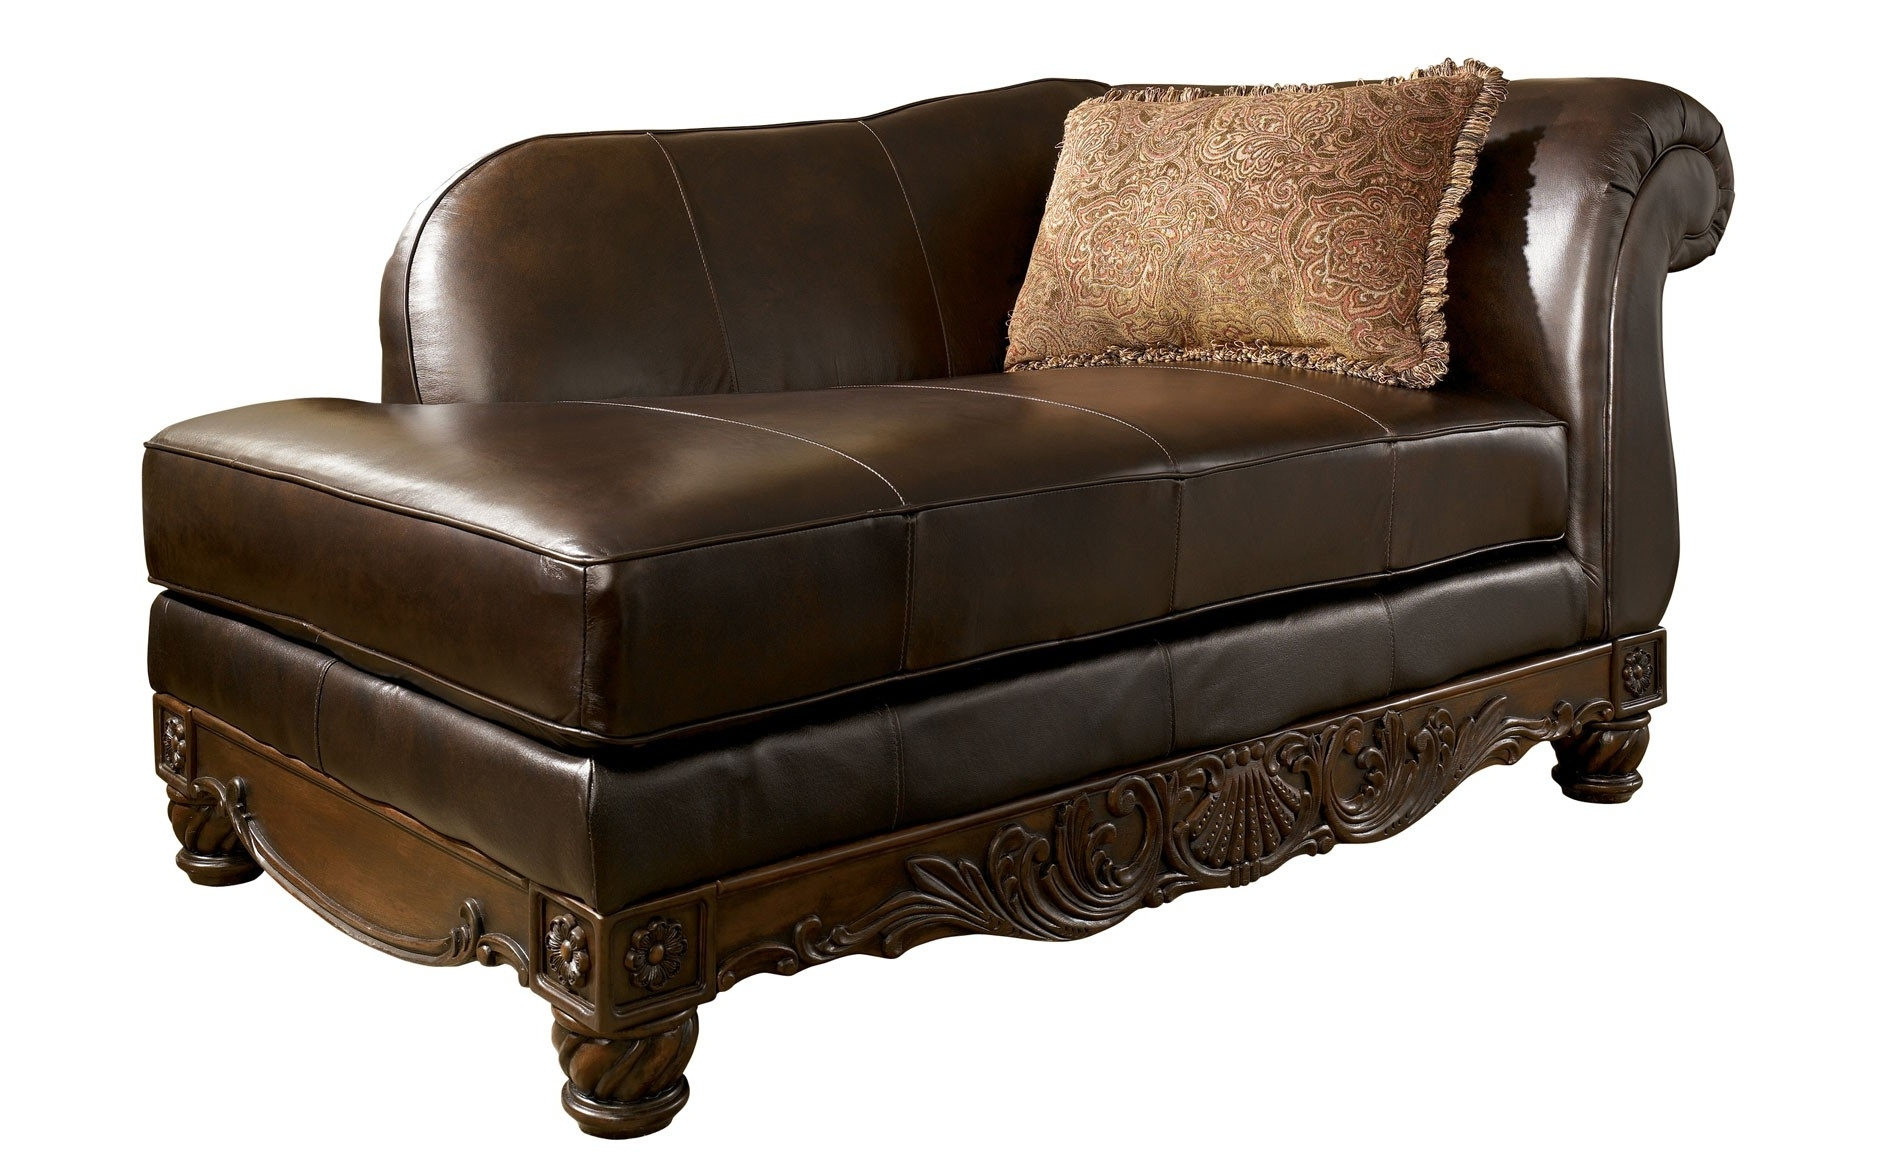 Most Current Rustic Chocolate Leather Chaise Lounge Chair With Single Arm And Regarding Brown Leather Chaises (View 12 of 15)